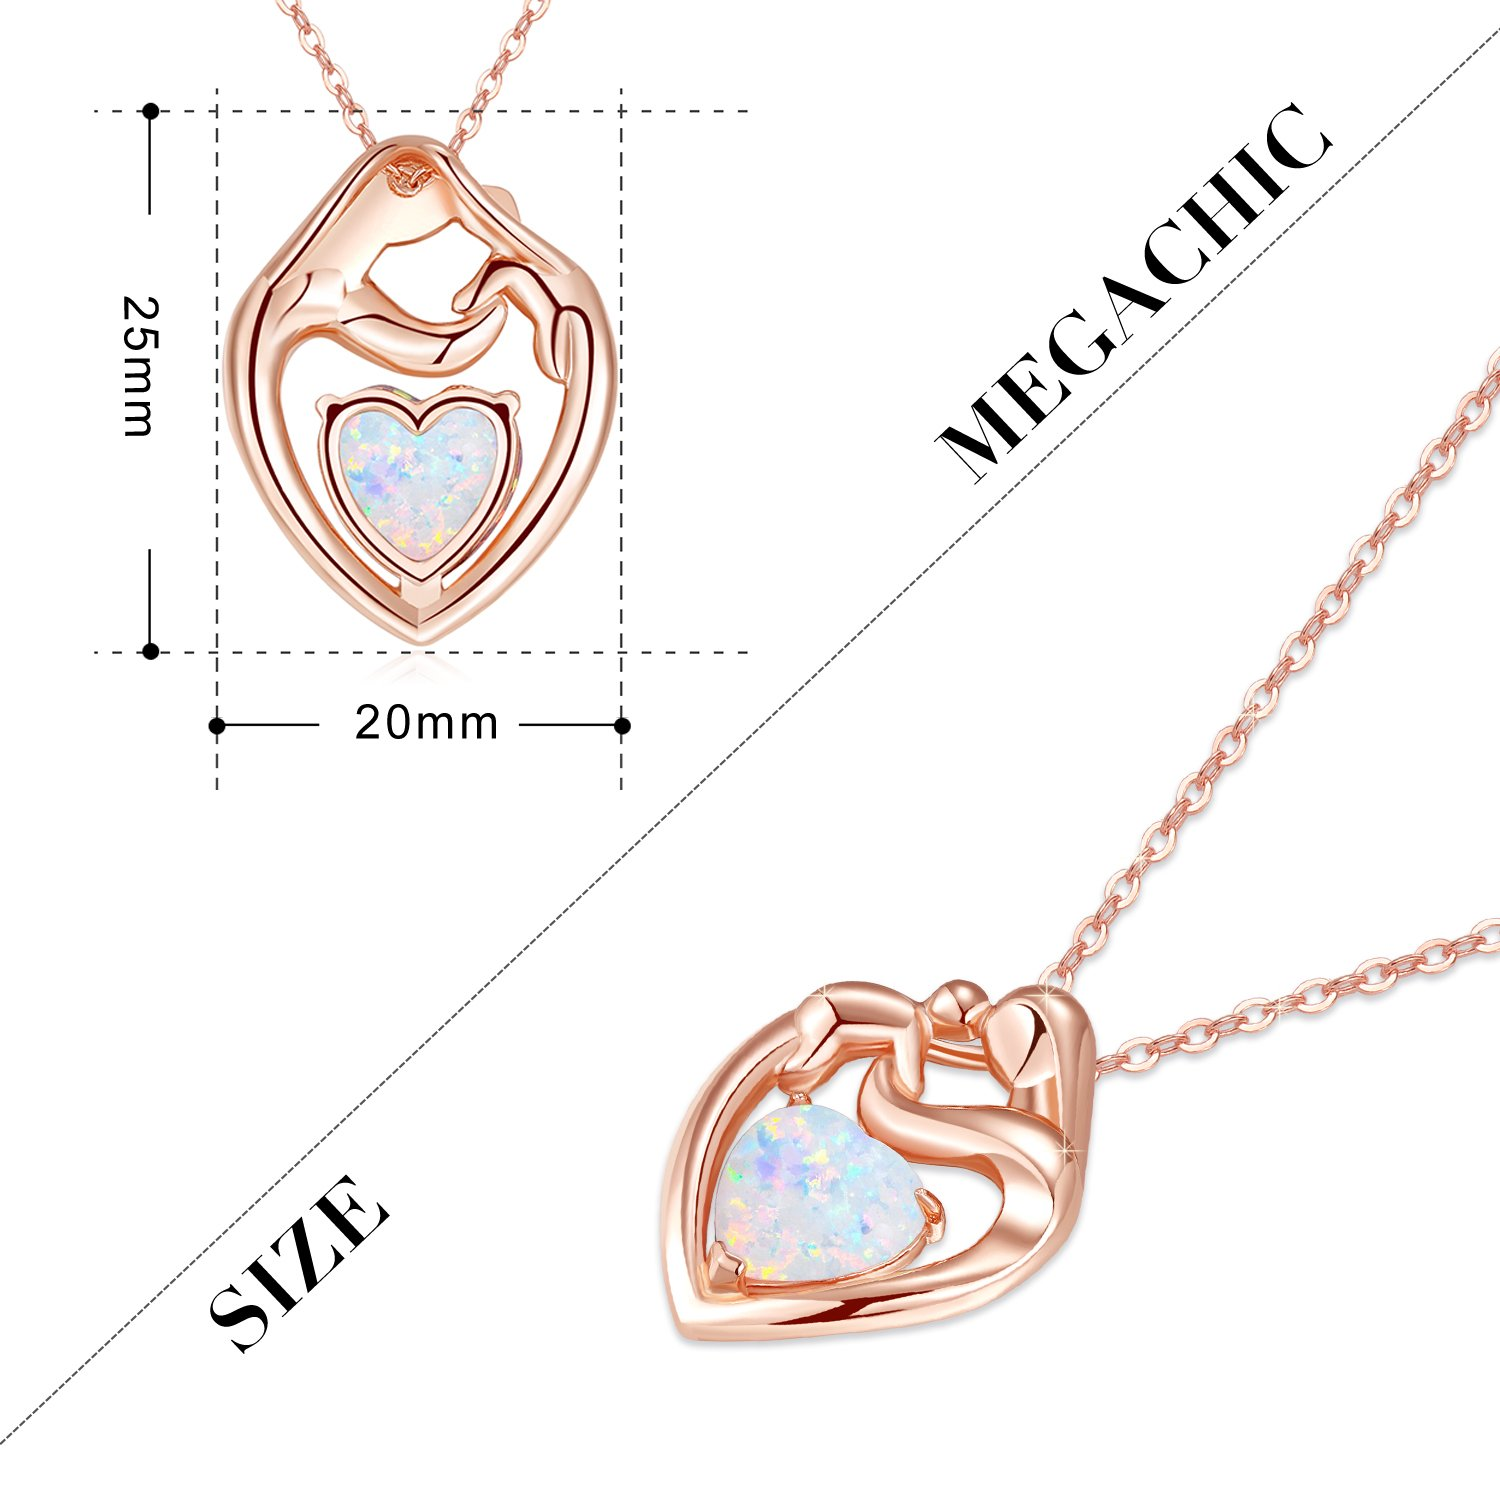 MEGACHIC Women Mother Child Rose Gold Created White Opal Heart Pendant Necklace UOcBpZjB